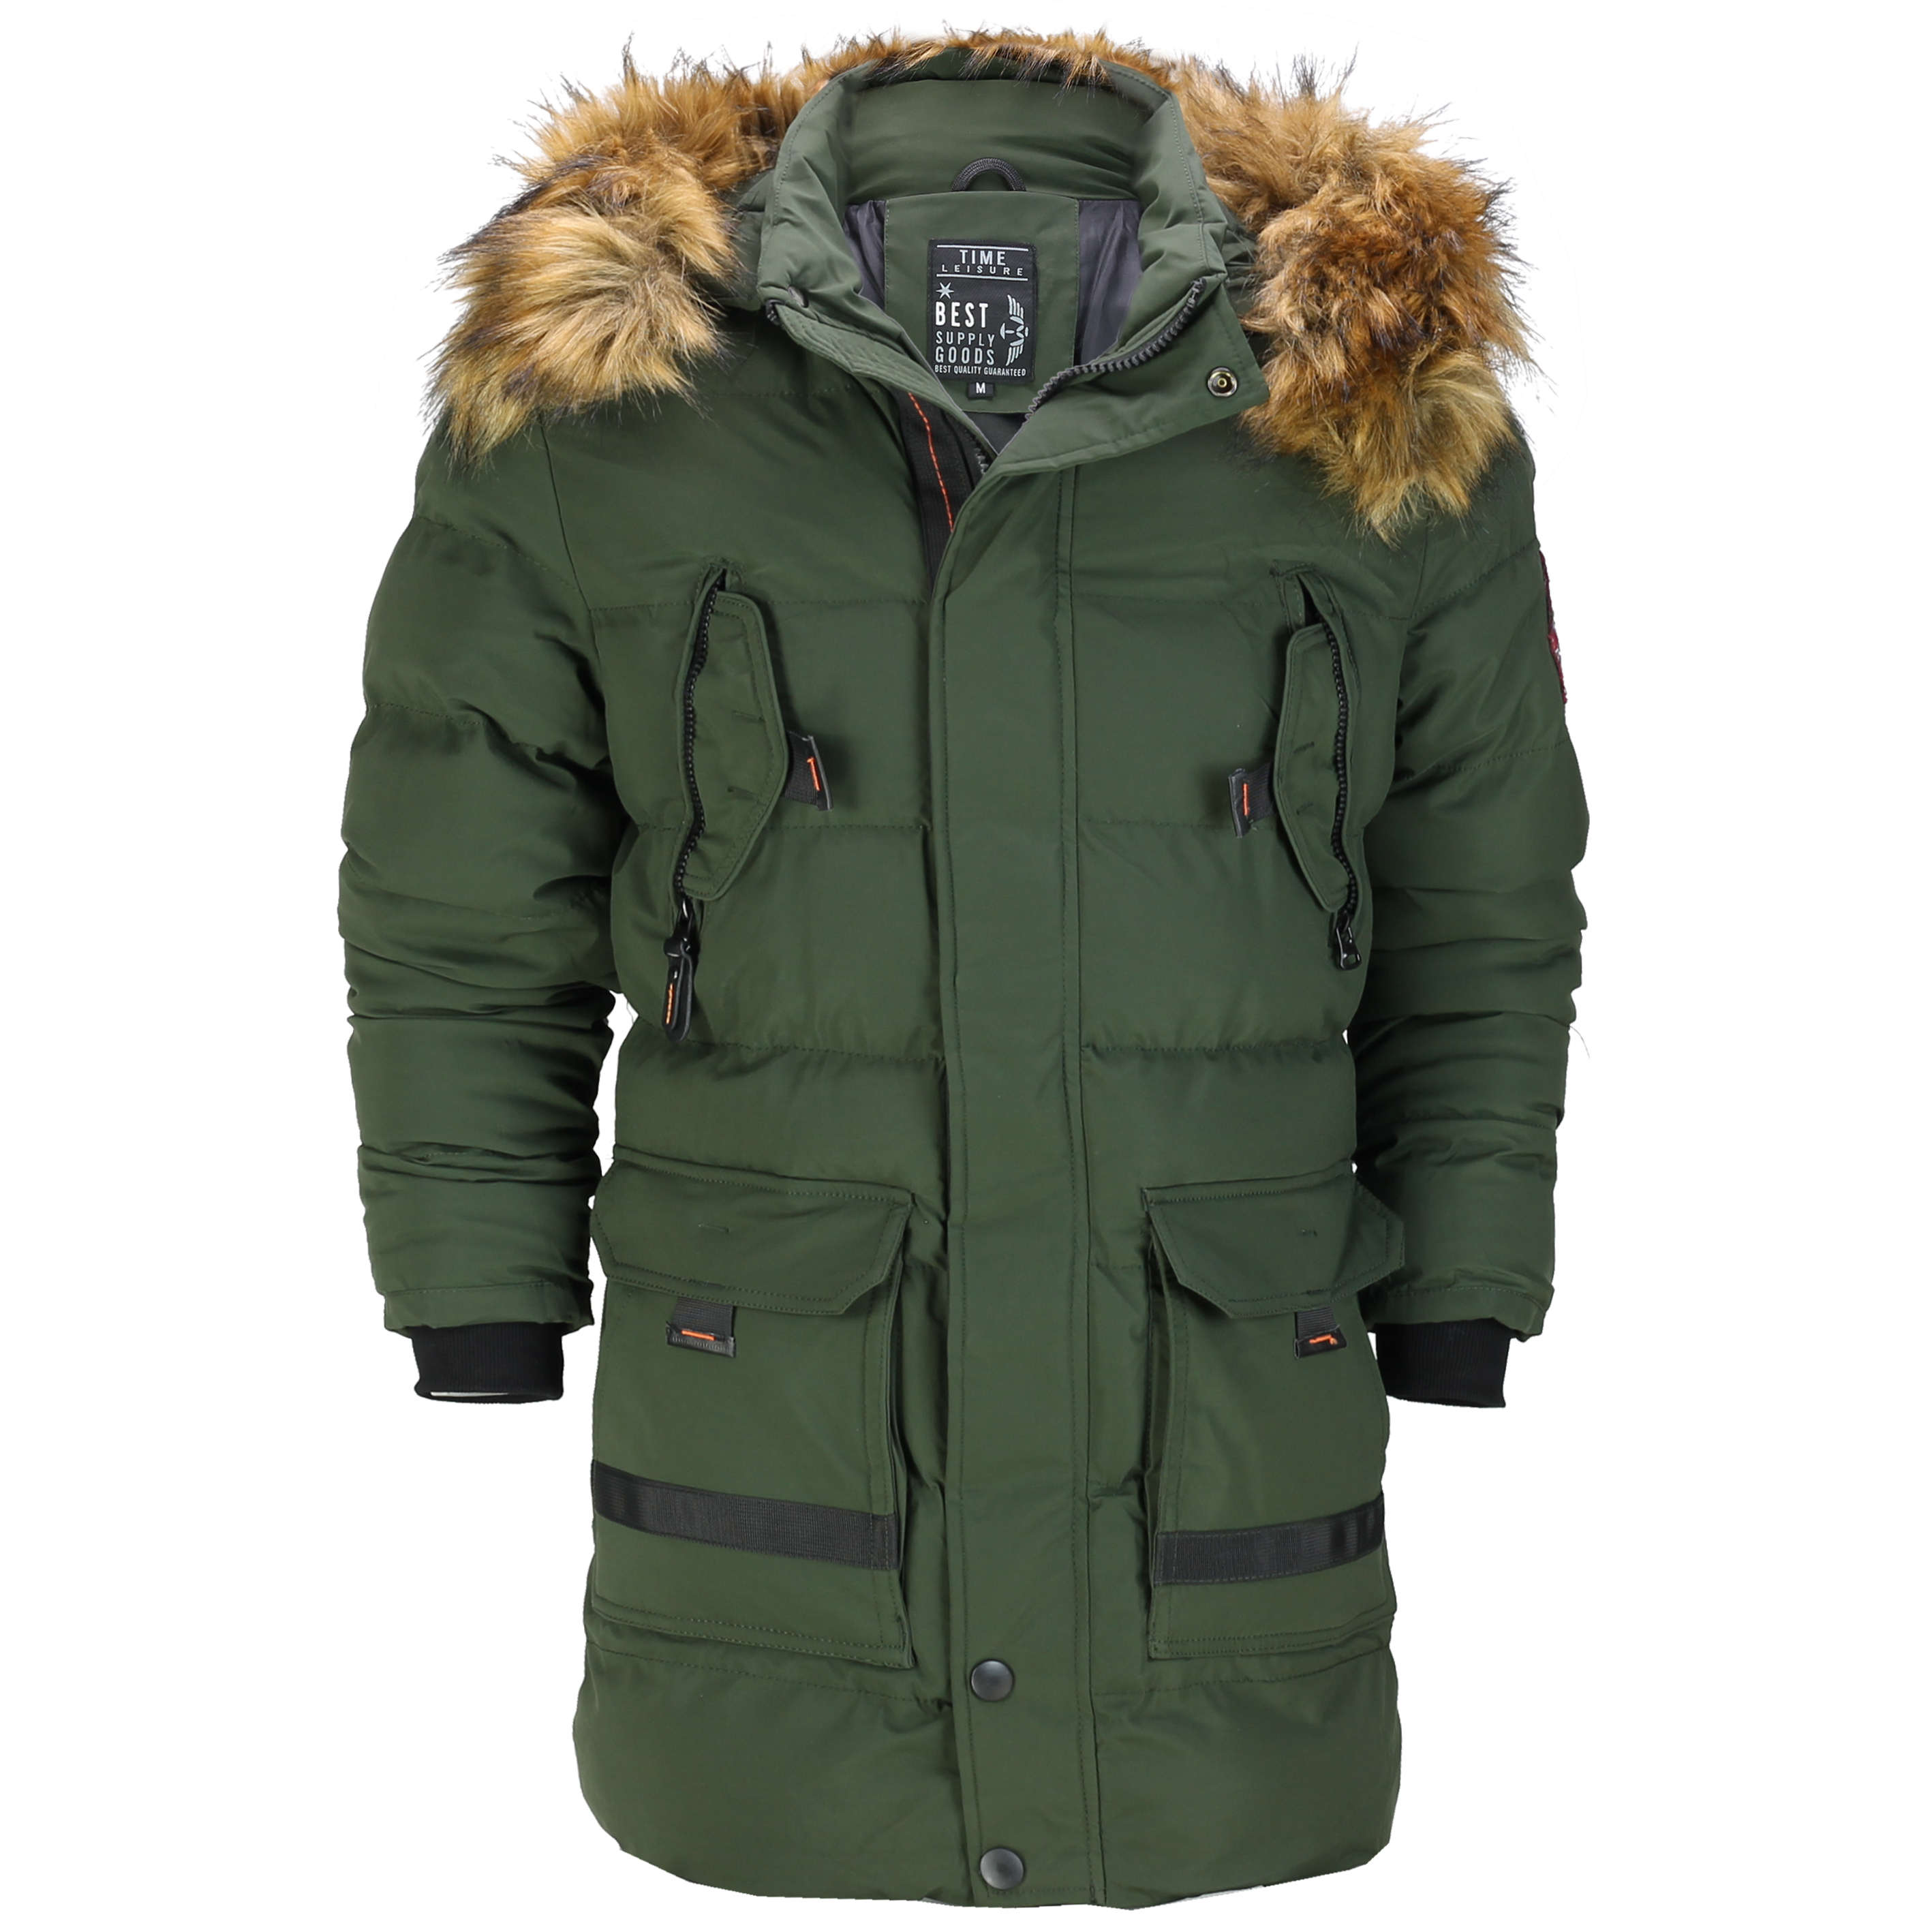 63609f2f2 Details about New Mens Warm Heavy Weight Padded Winter Jacket Puffer Parka  Coat Fur Trim Hood